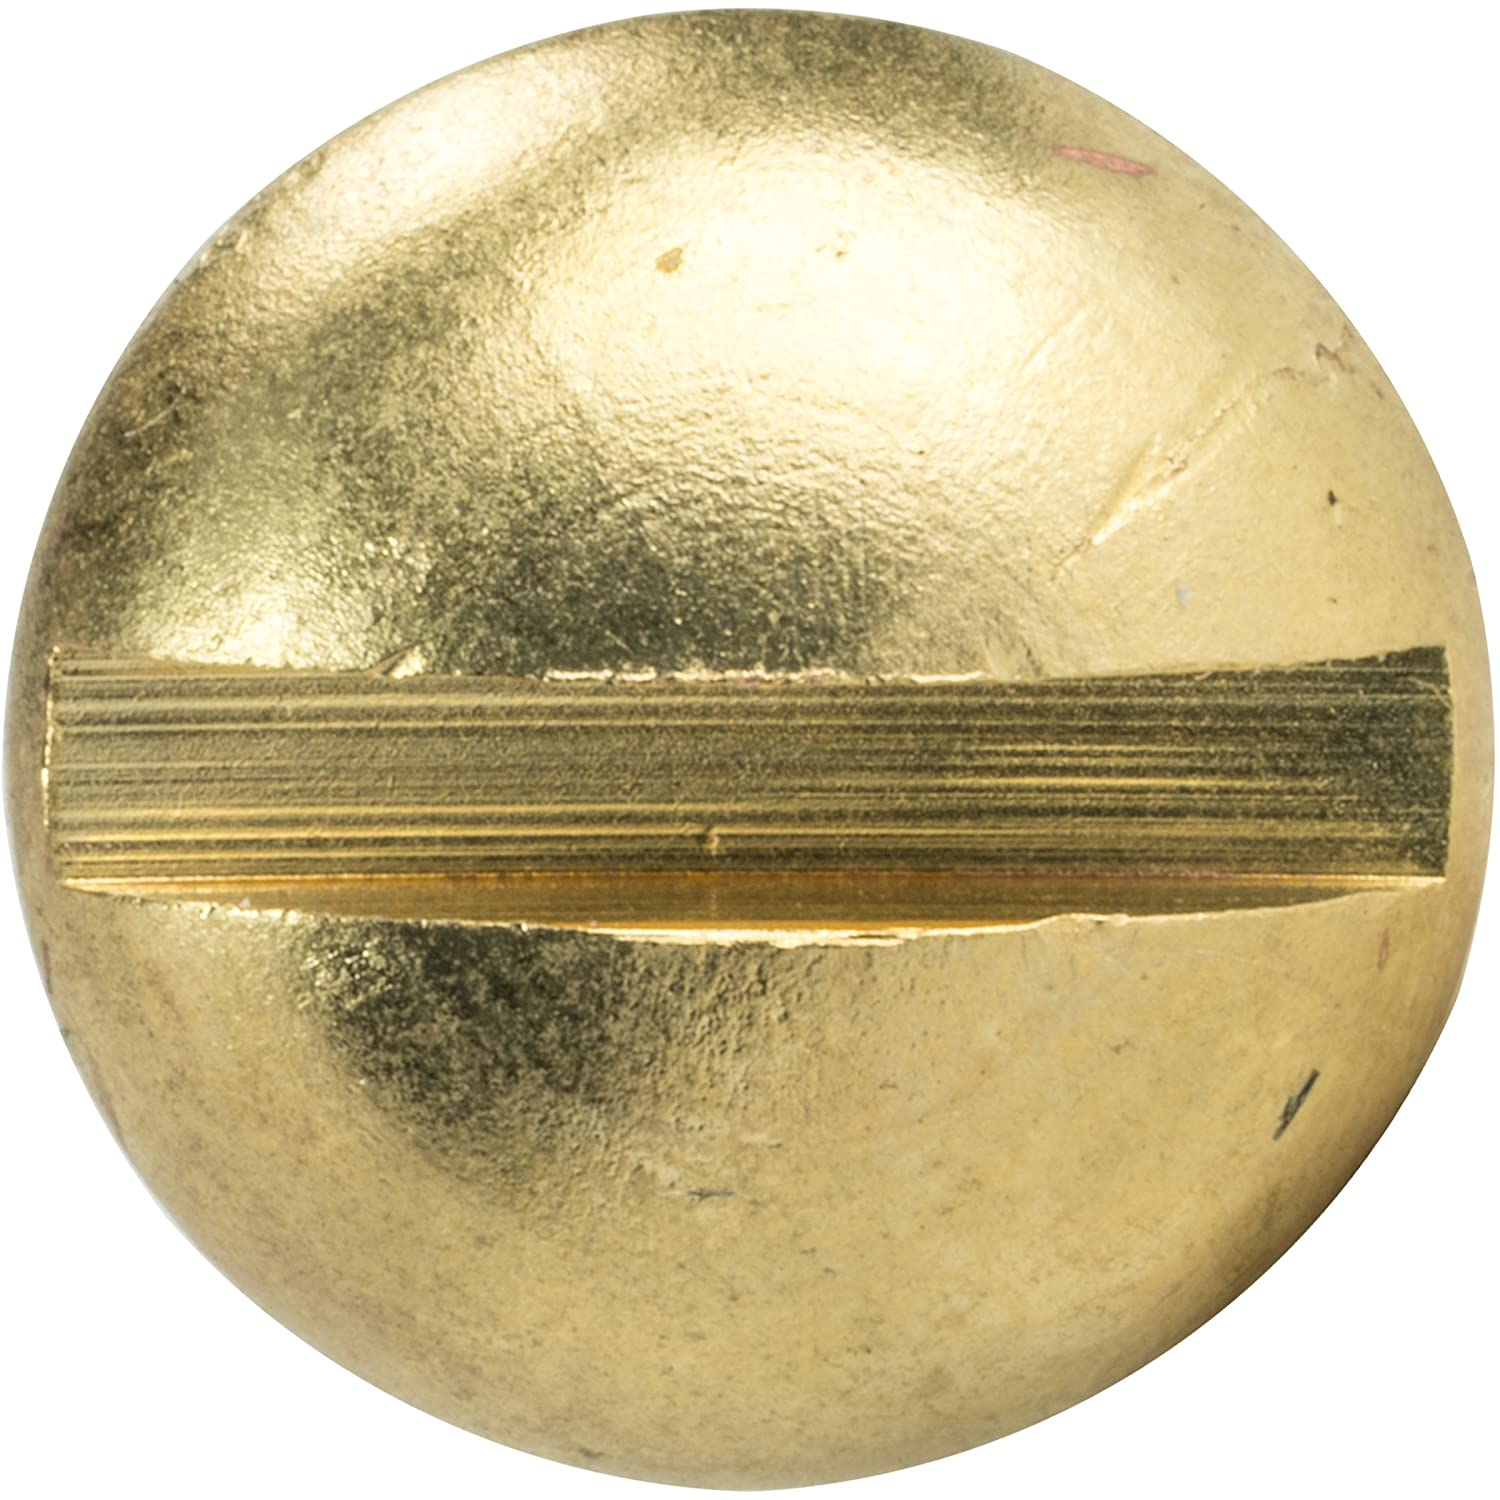 Solid Brass #14 x 3//4 Round Head Wood Screws Quantity 25 Partially Threaded Slotted Drive